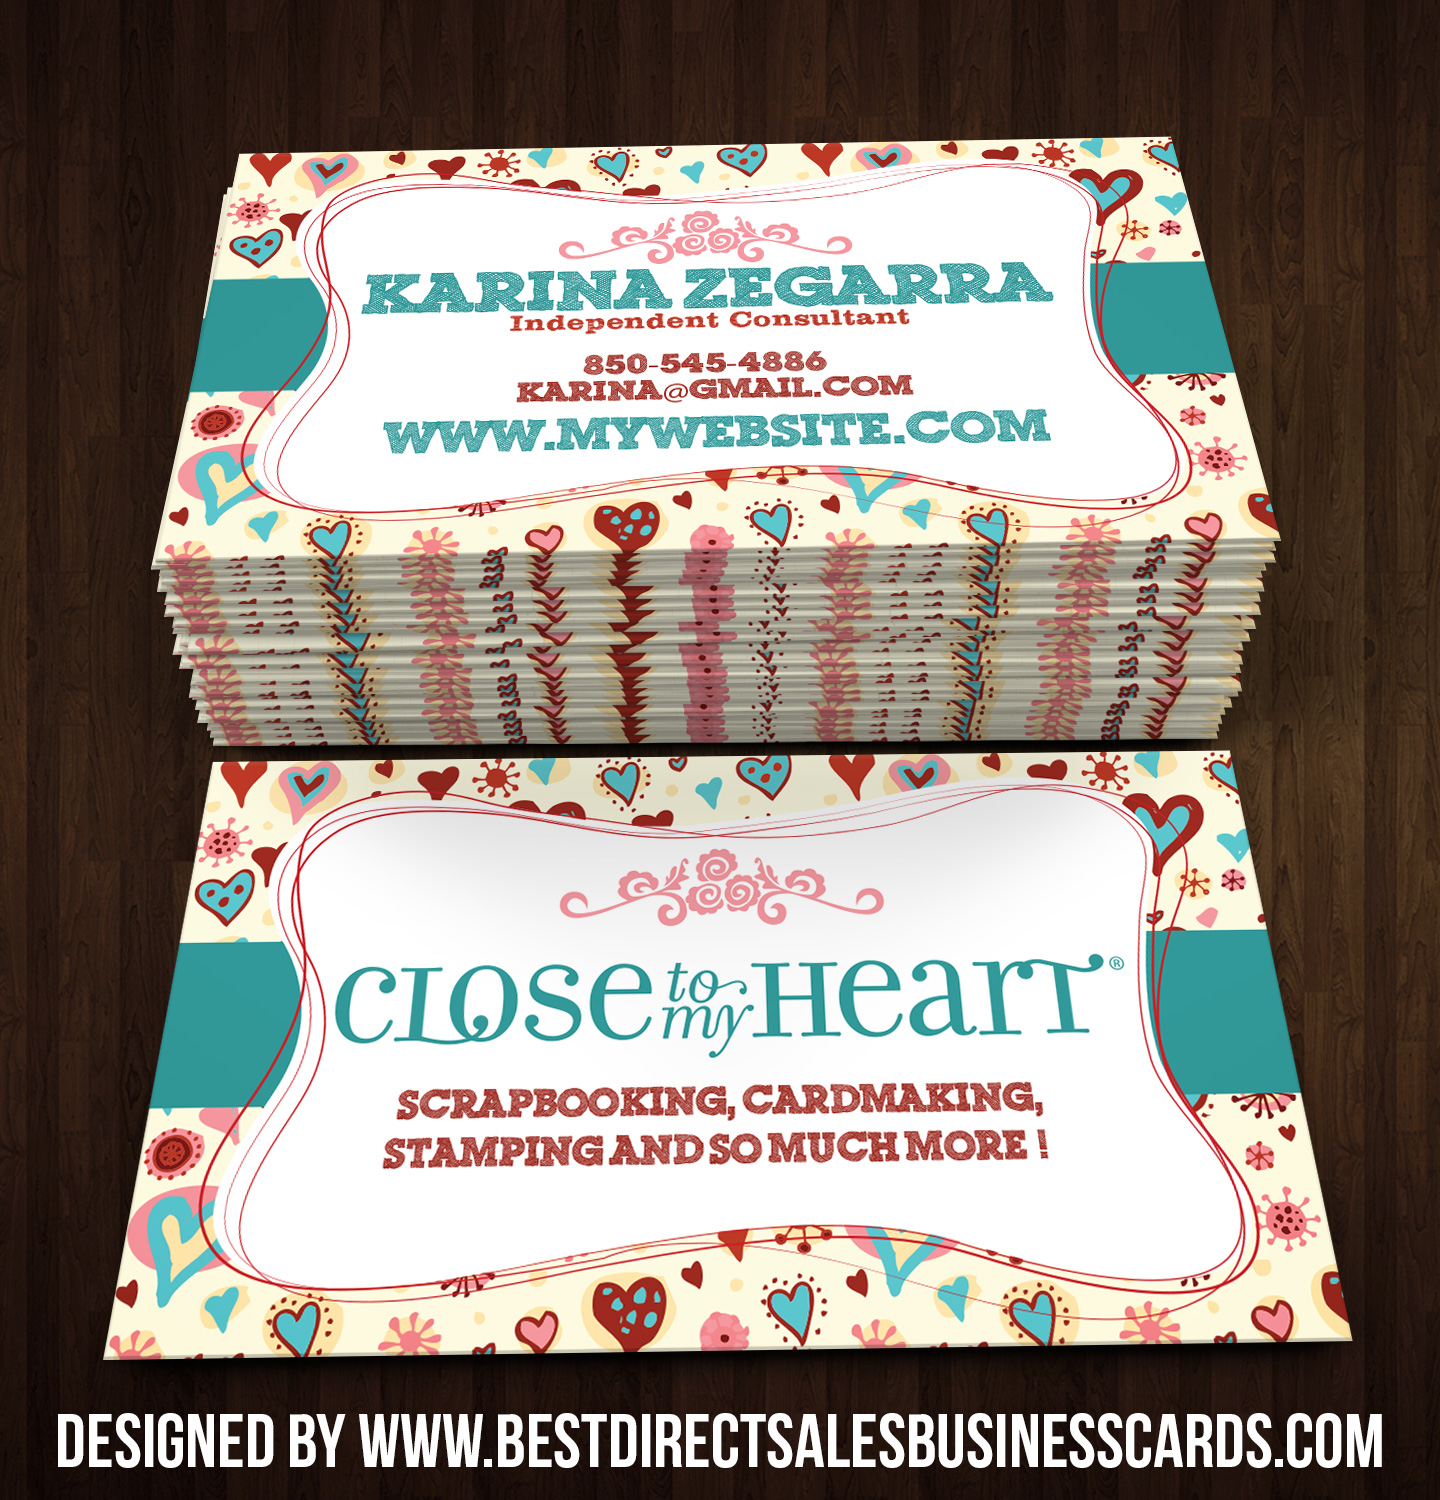 Close to my Heart Business Cards style 4 · KZ Creative Services